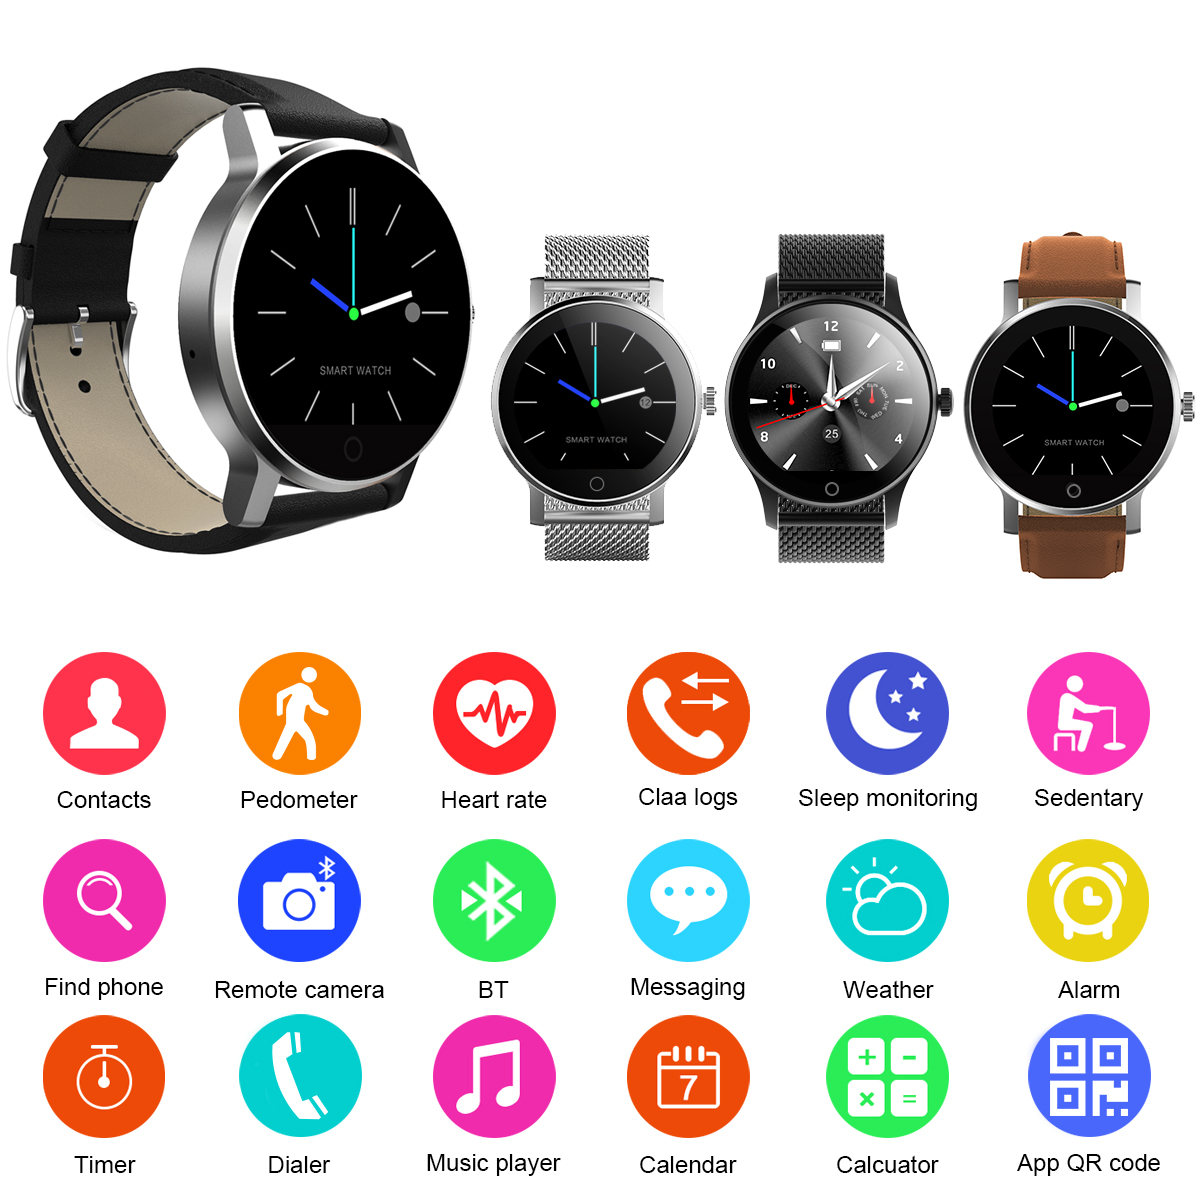 Details about Diggro K88H Smart Watch Sports Pedometer Heart Rate Monitor  for Android iOS